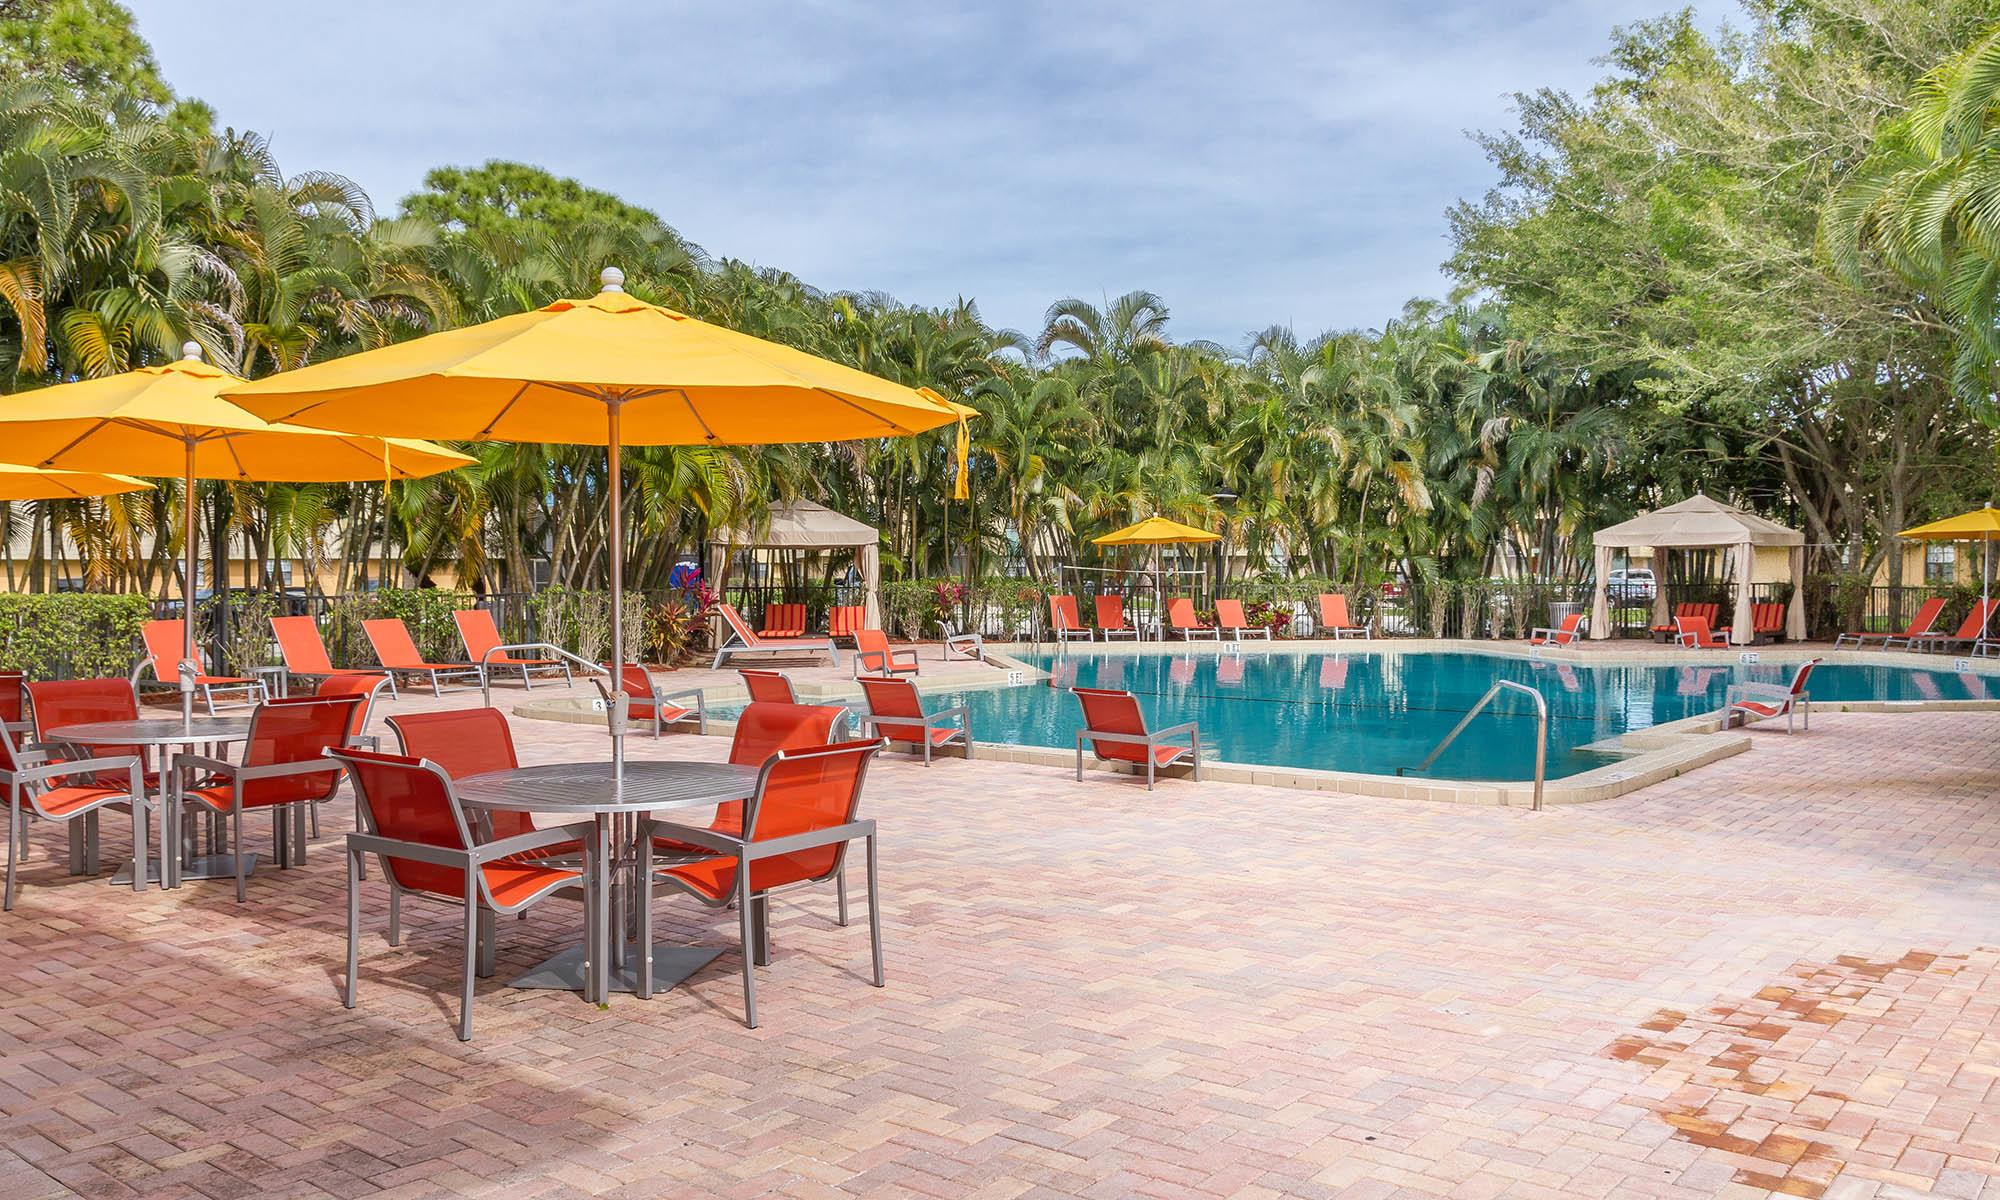 Palm Beach Gardens Palm Beach FL Apartments for Rent The Fountains